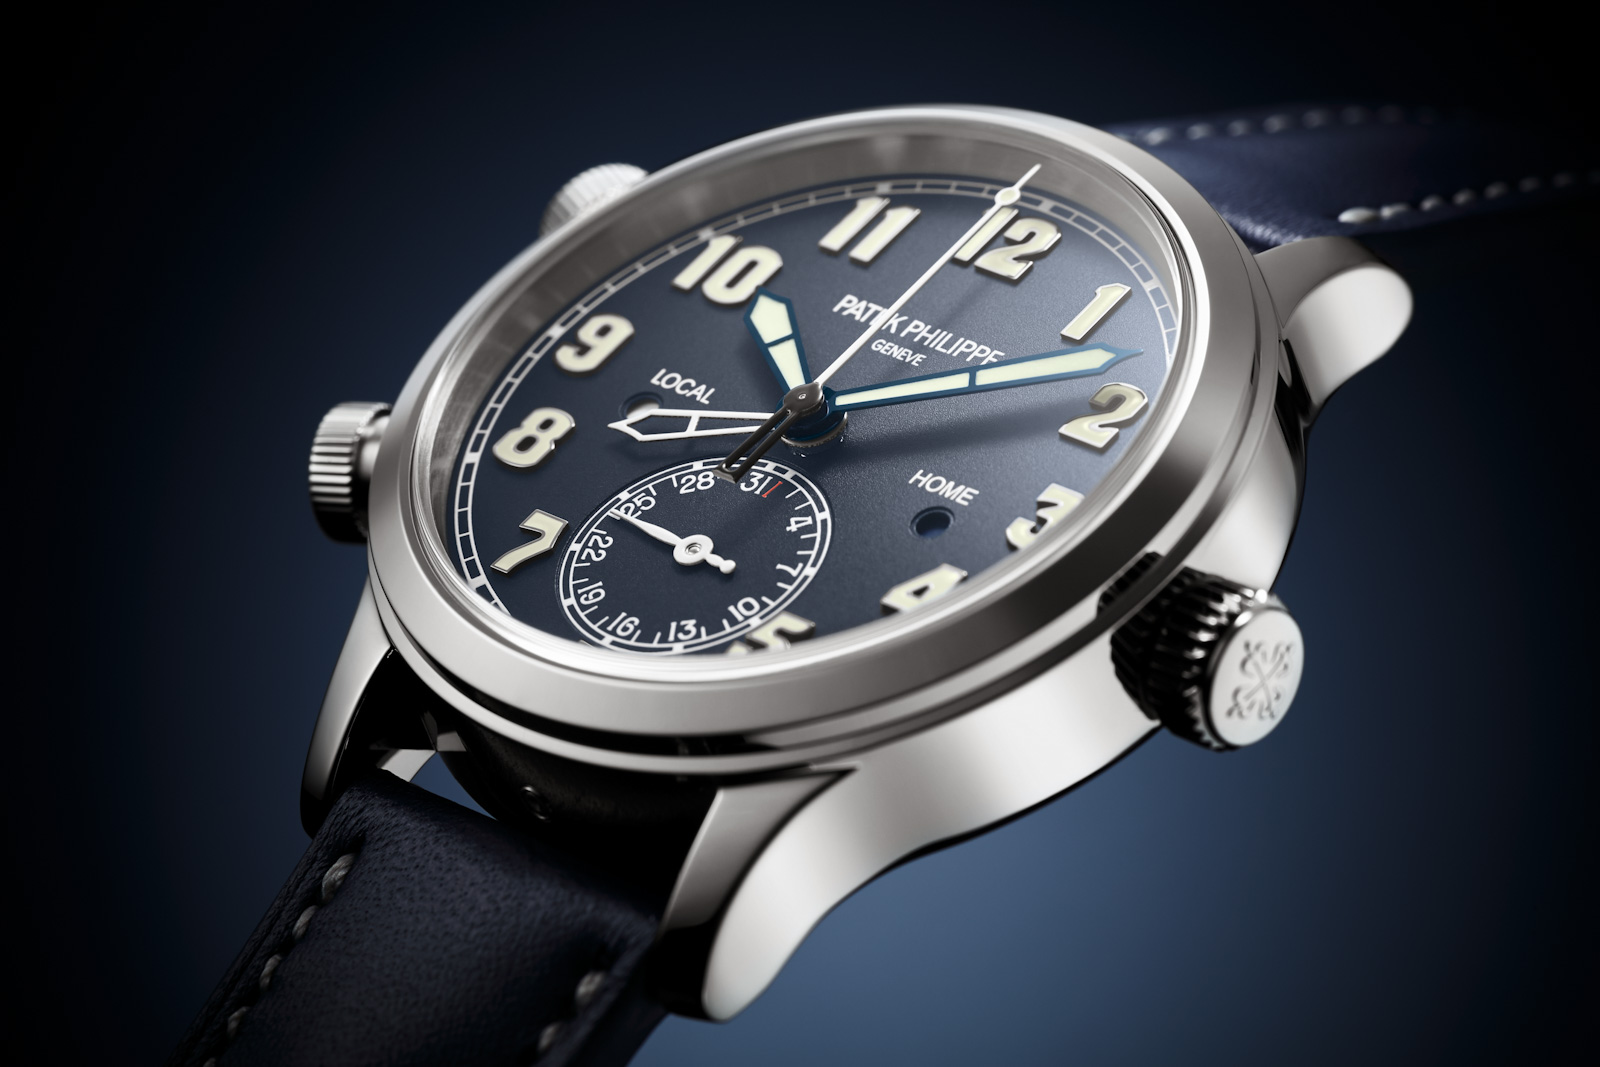 INTRODUCING: The critics were wrong, and the Patek Philippe Calatrava Pilot Travel Time flies again, this time as the 7234G-001